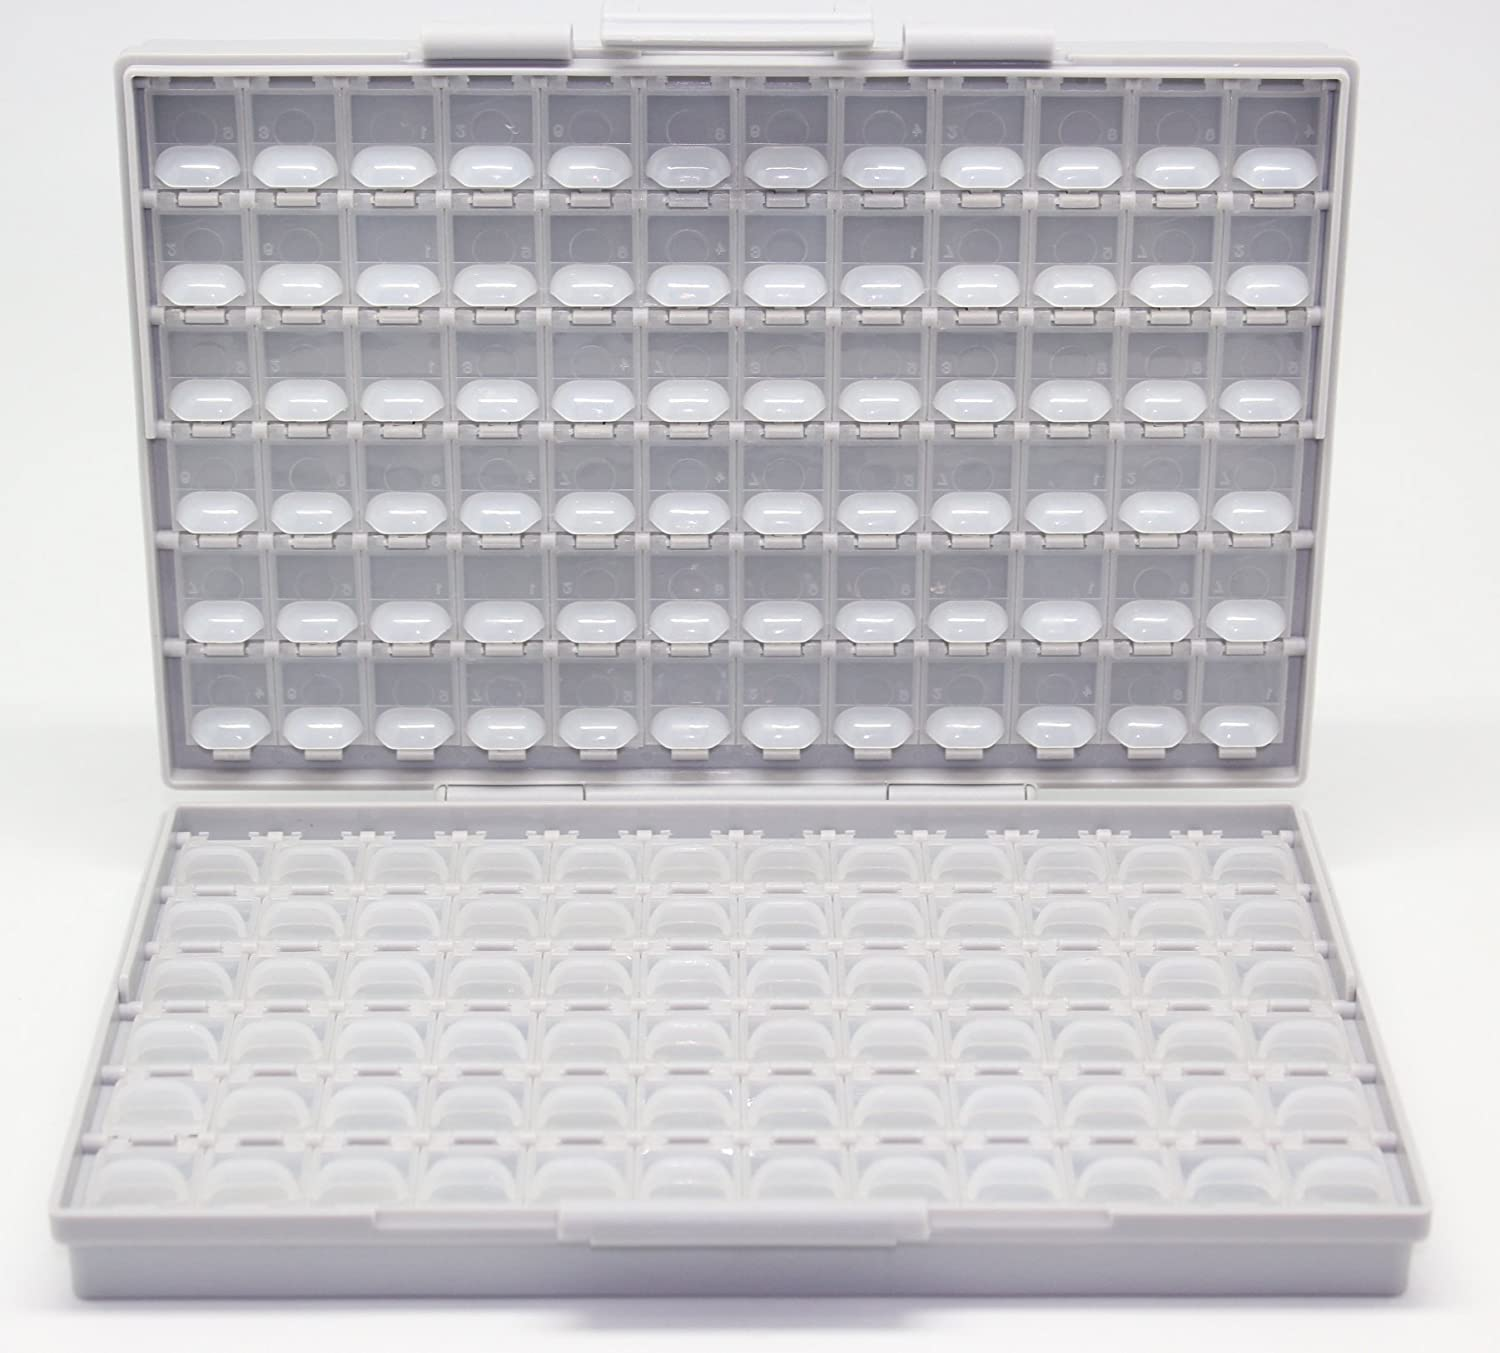 Bead Storage Organiser We Take Customers As Our Gods Bead Storage & Jewelry Display